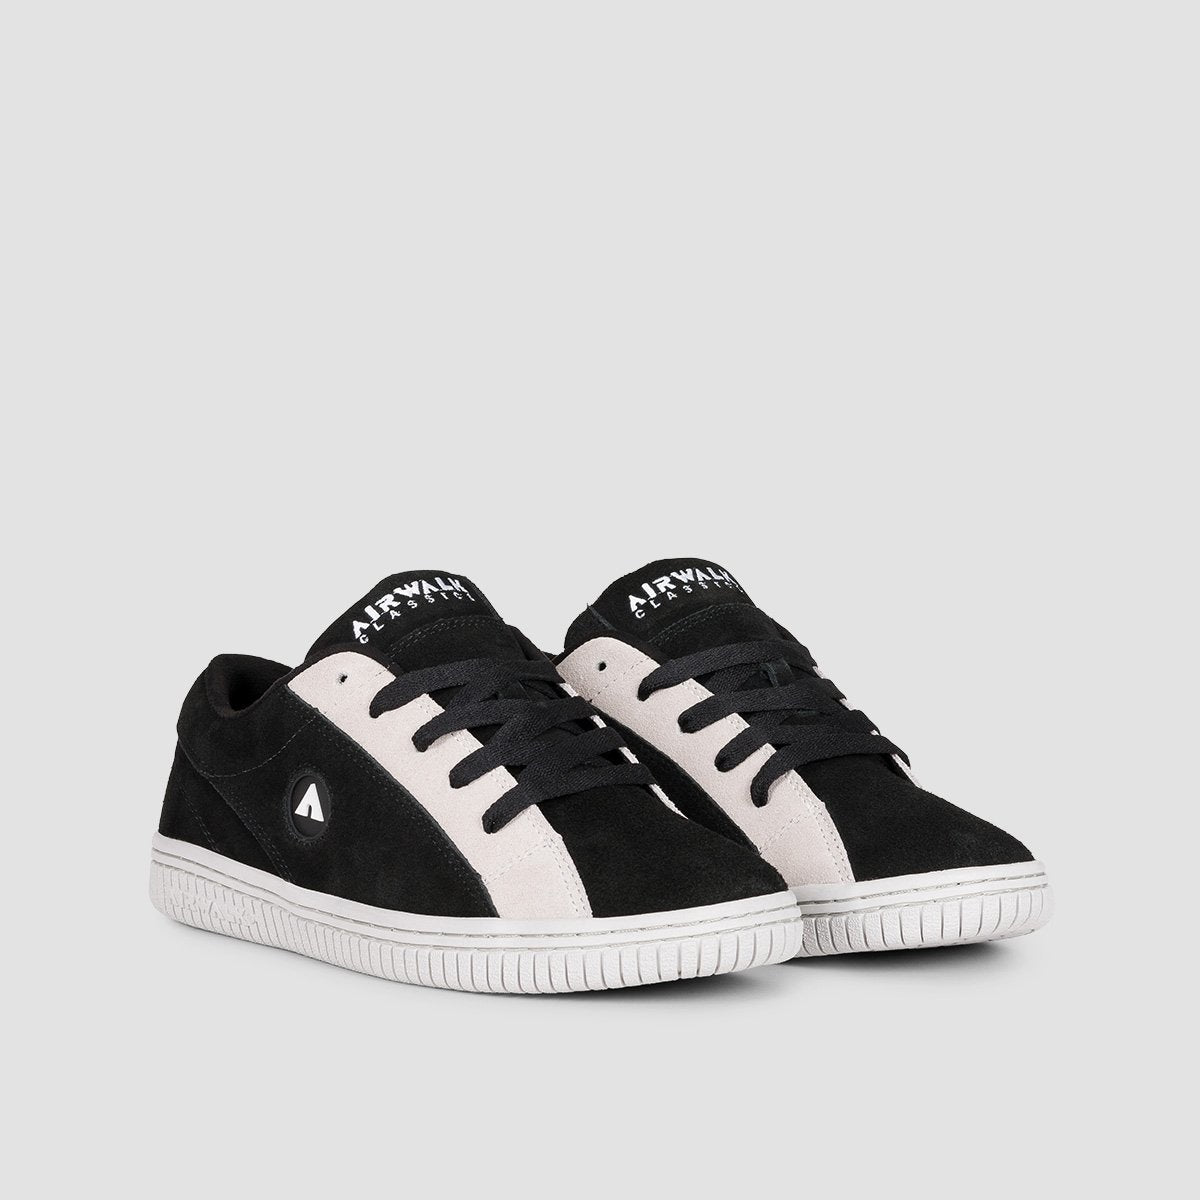 Airwalk Random Black White - Kids - Footwear